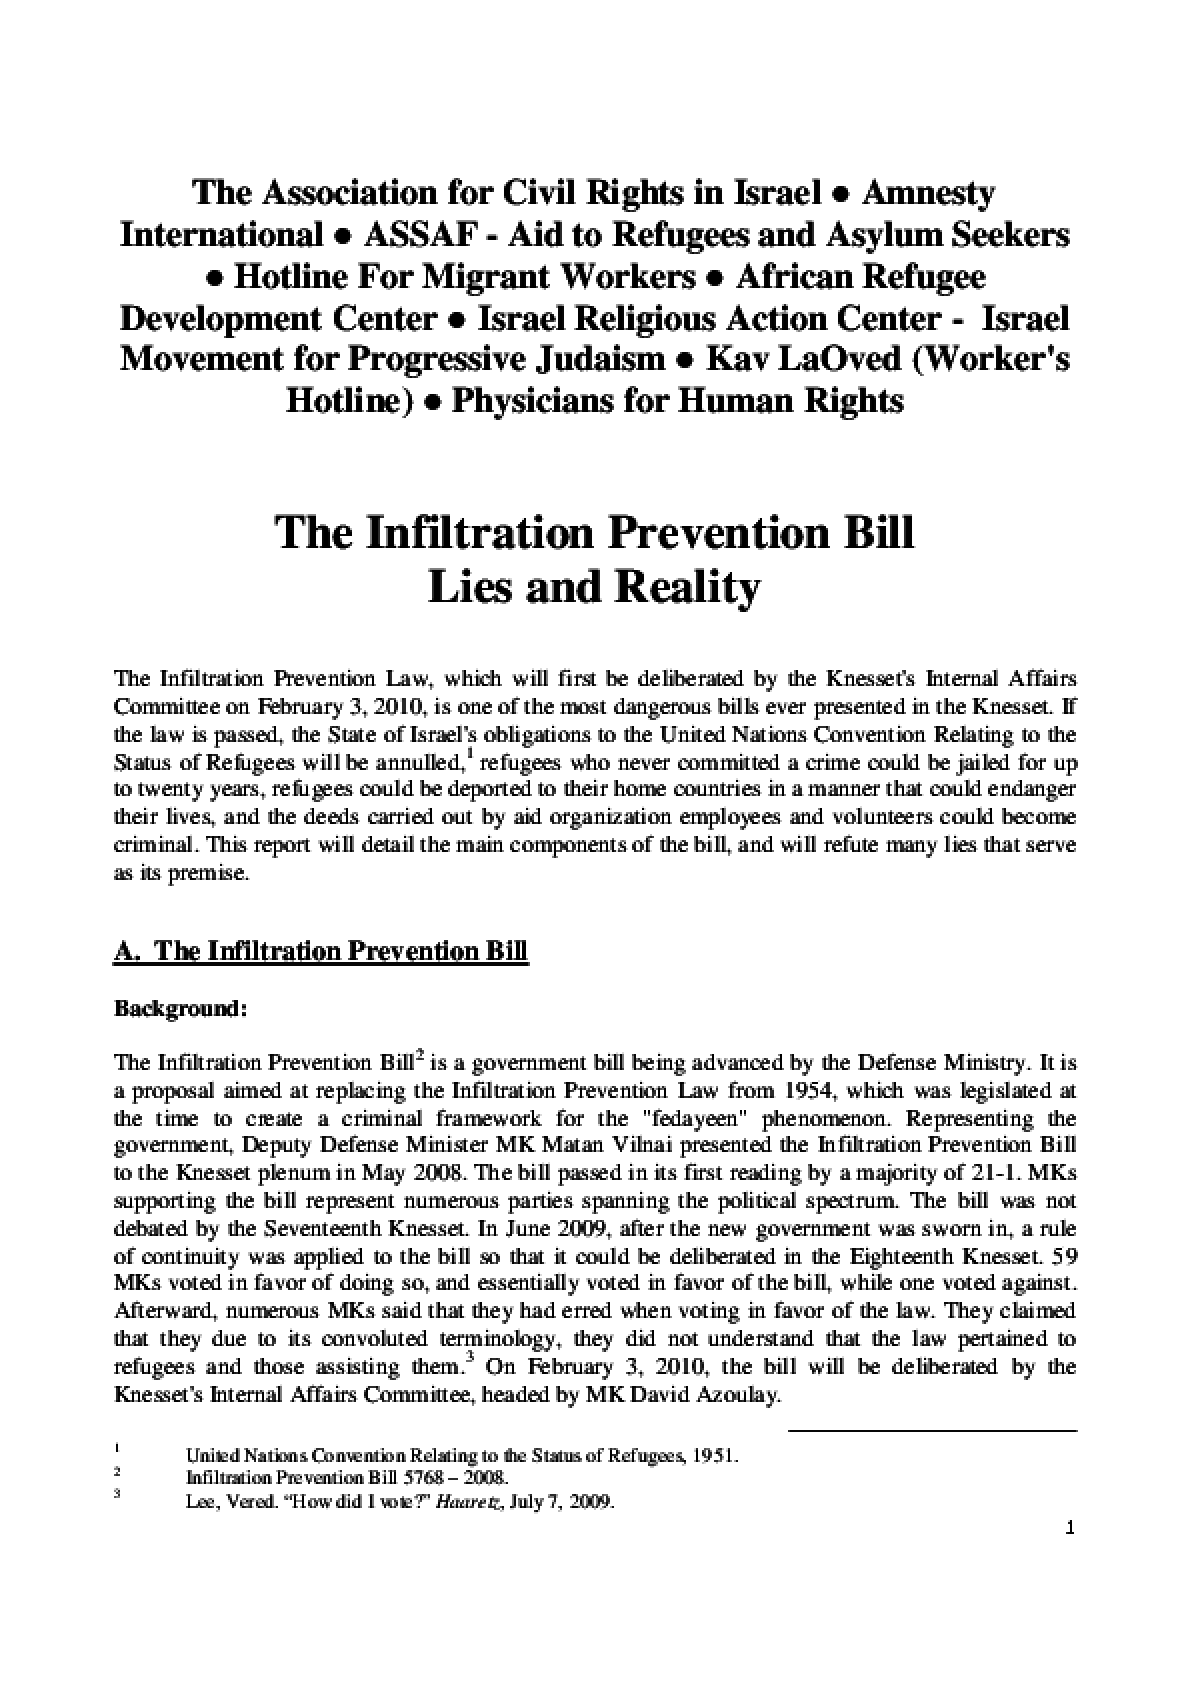 The Infiltration Prevention Bill Lies and Reality